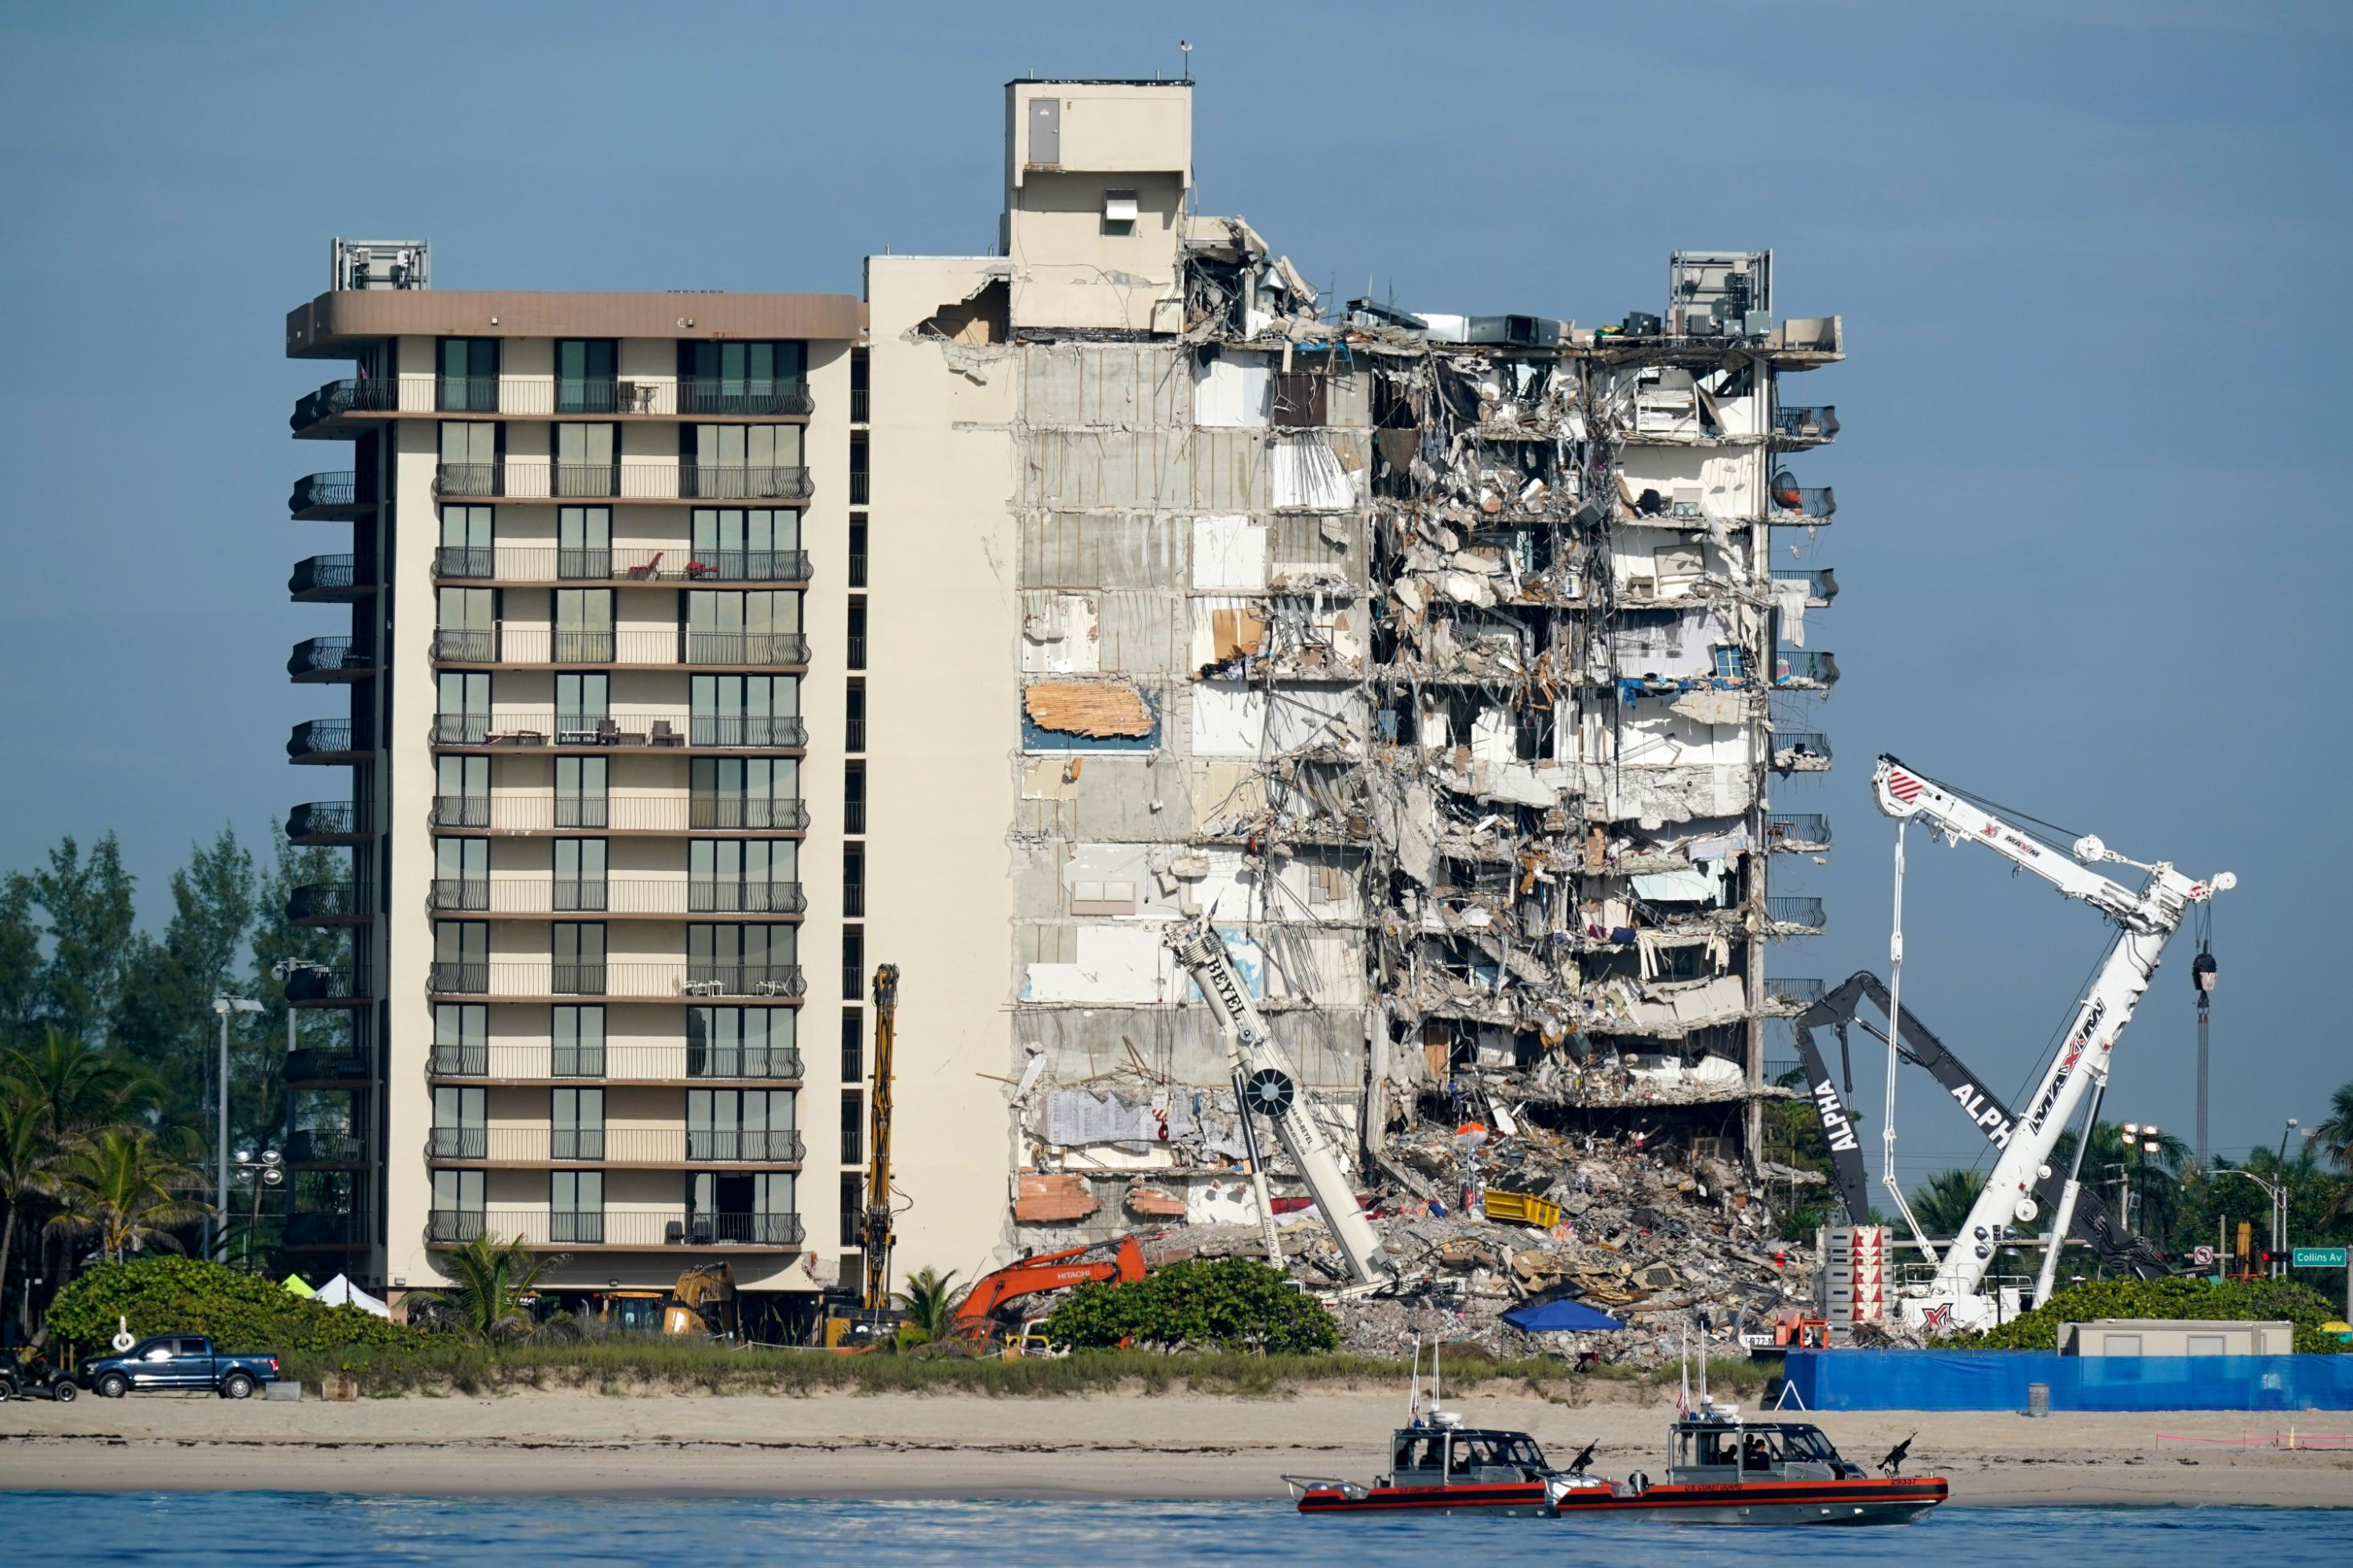 A woman's voice was heard from the rubble during the initial rescue efforts at the Surfside condo collapse